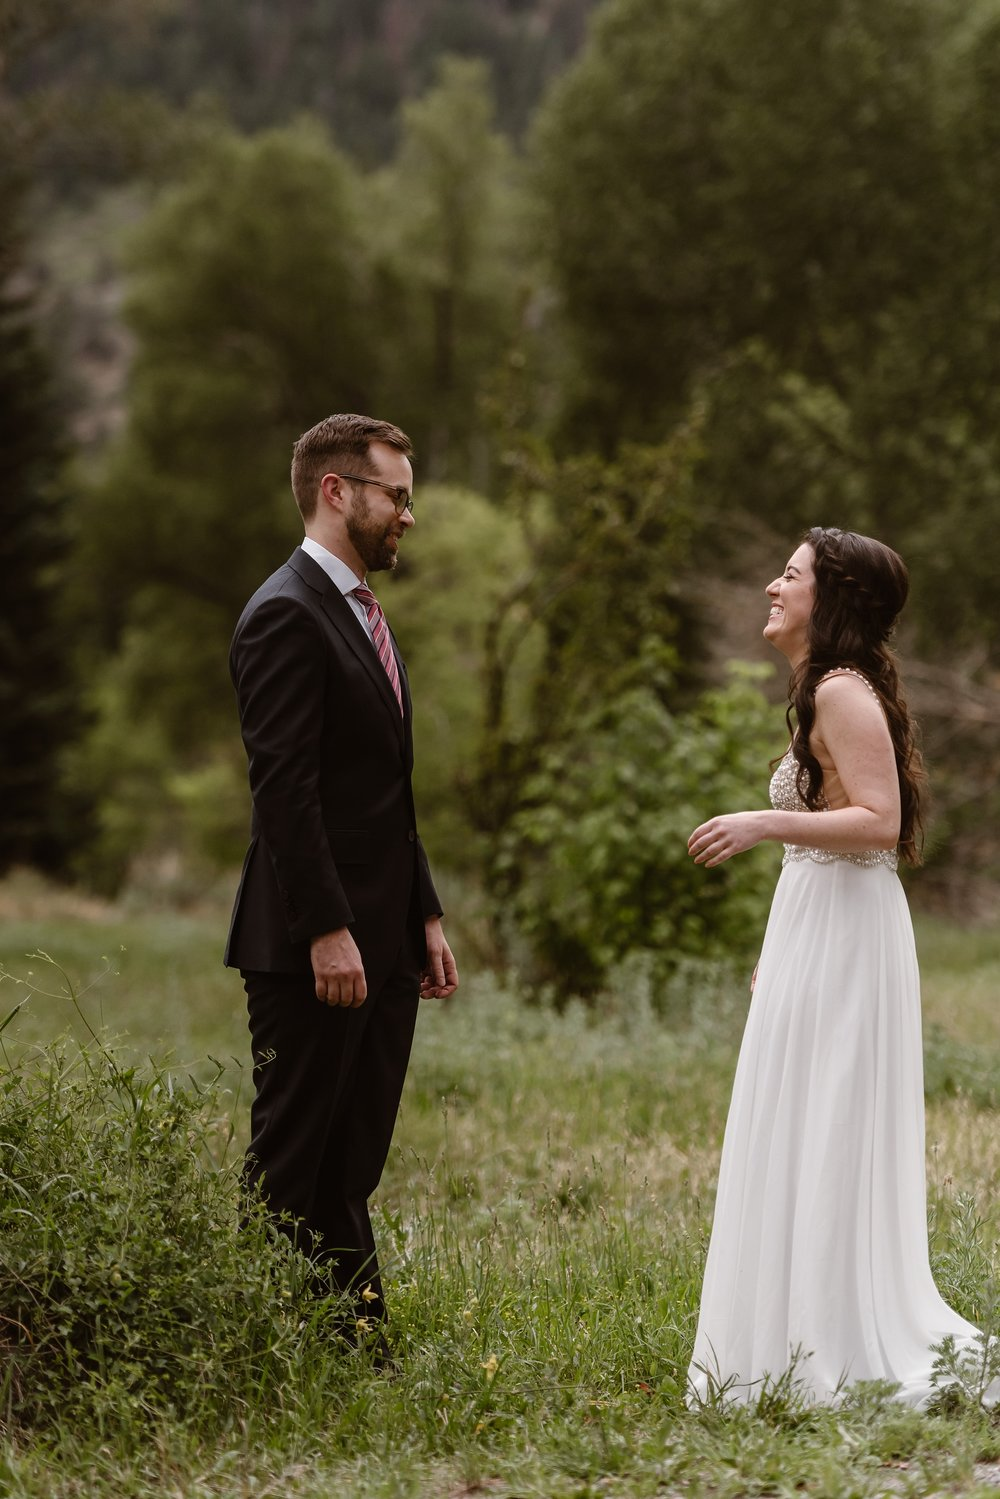 The bride and groom, Katie and Logan, stare at each other in the moments following their first look. As they stand in a green field and look at each other before their adventure elopement, Logan looks at Katie in awe as Katie smiles and laughs at him.